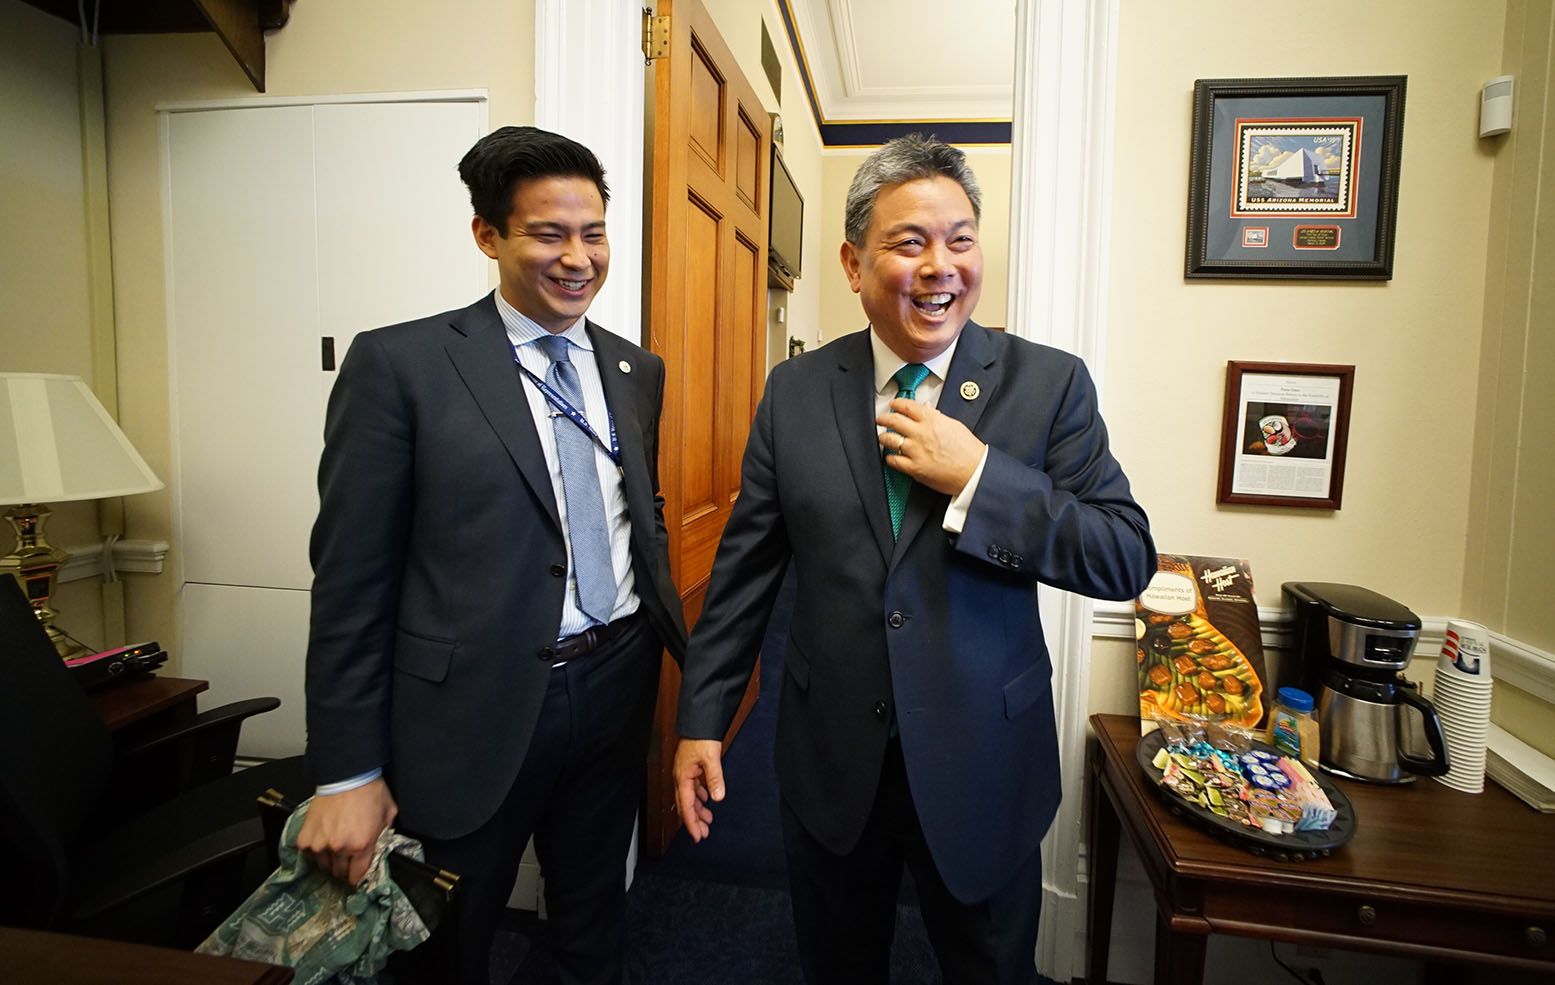 <p><strong>February 2015, Ensconced in Office:</strong> Takai with his deputy communications director, Alex Hetherington, at his office in Washington, D.C.</p>